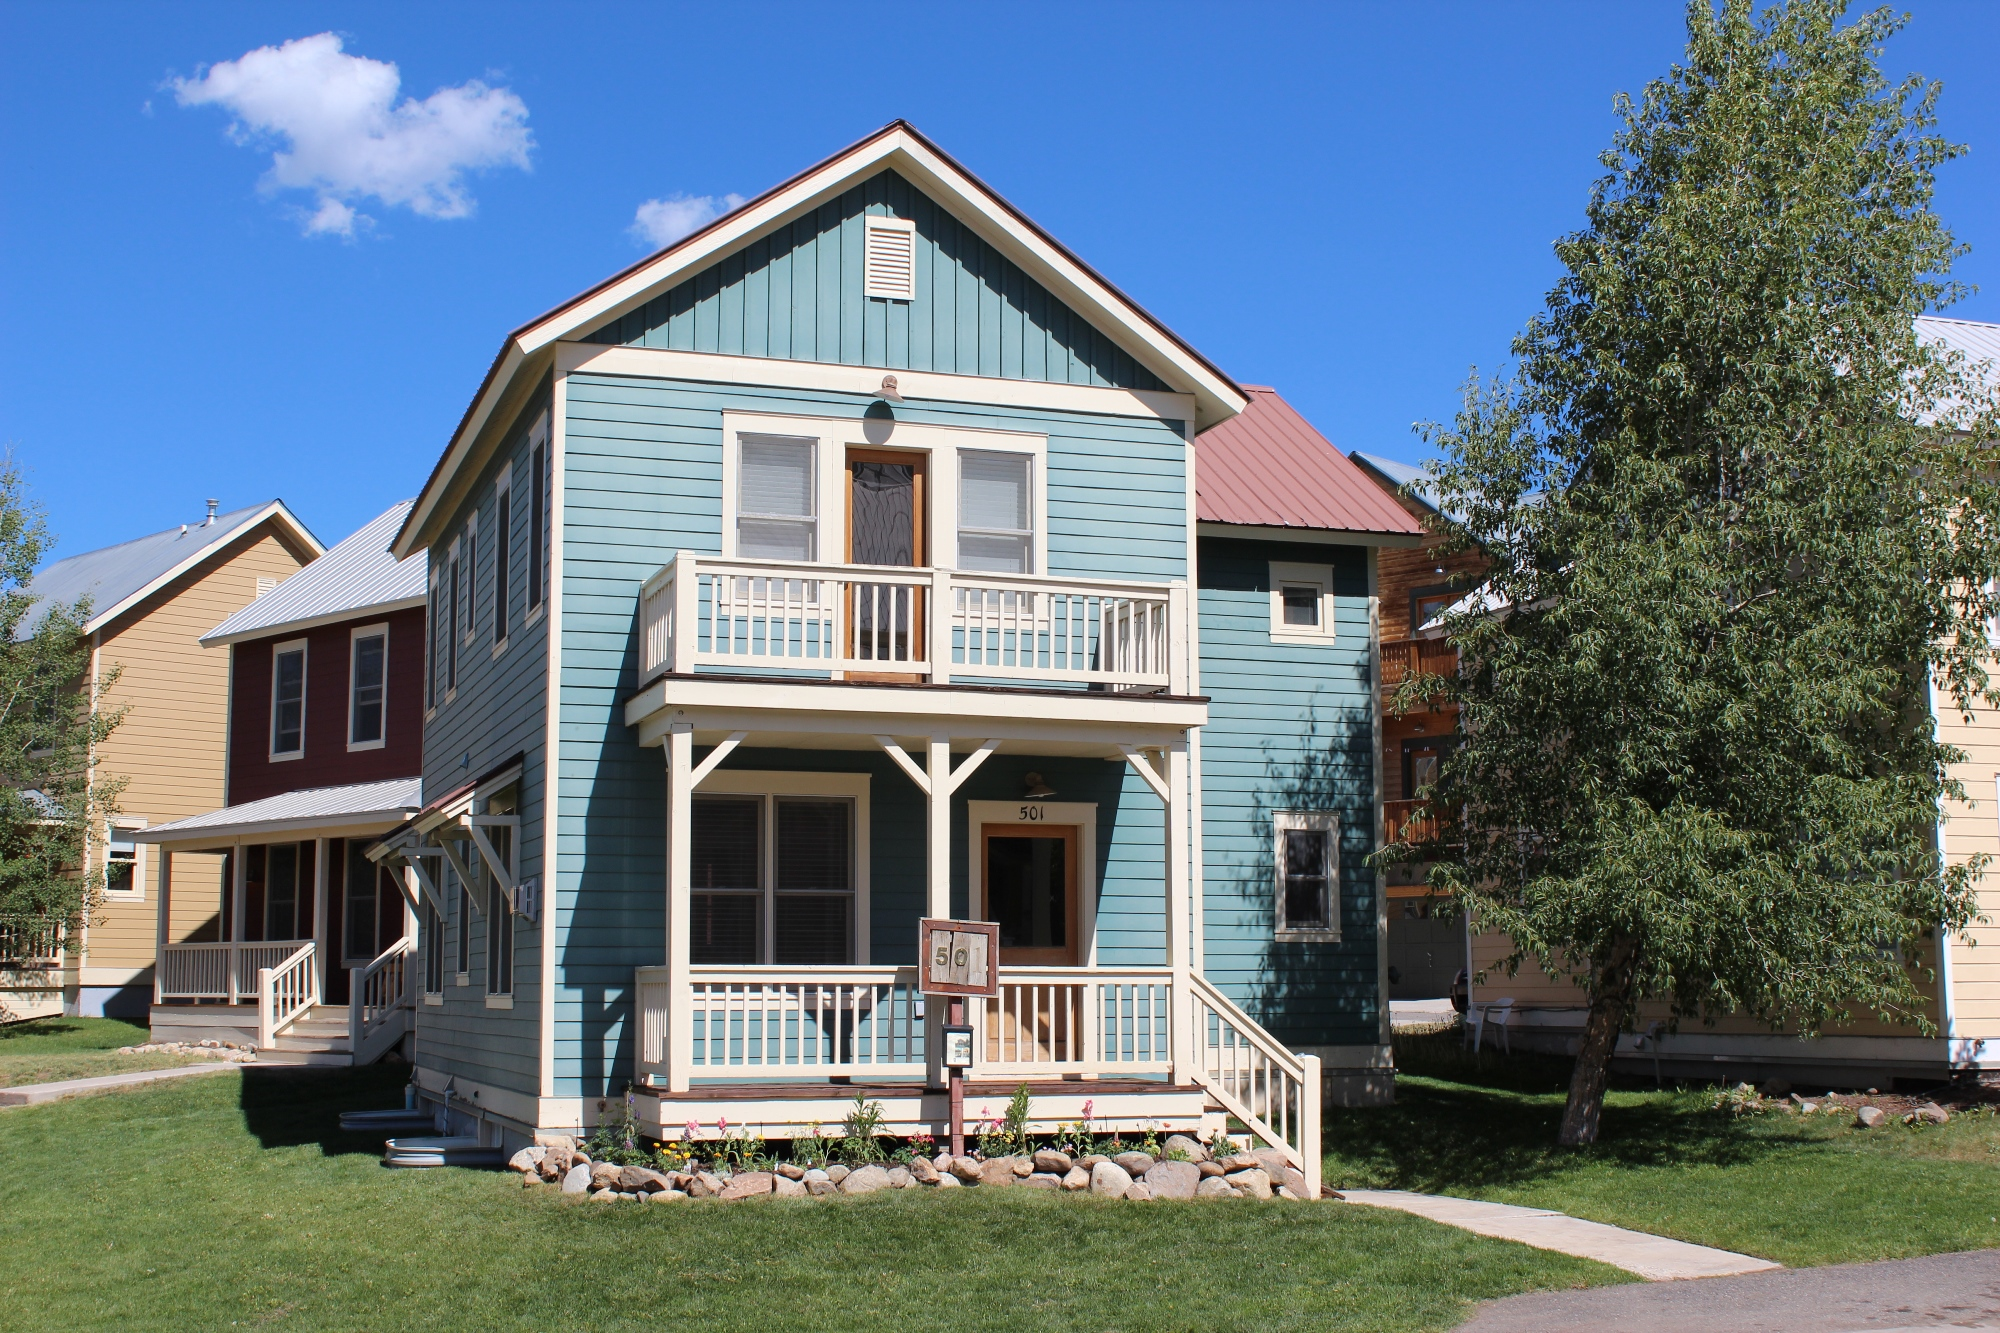 Single Family Home for Sale at Desirable Mountain Living 501 Horseshoe Drive Mount Crested Butte, Colorado 81225 United States